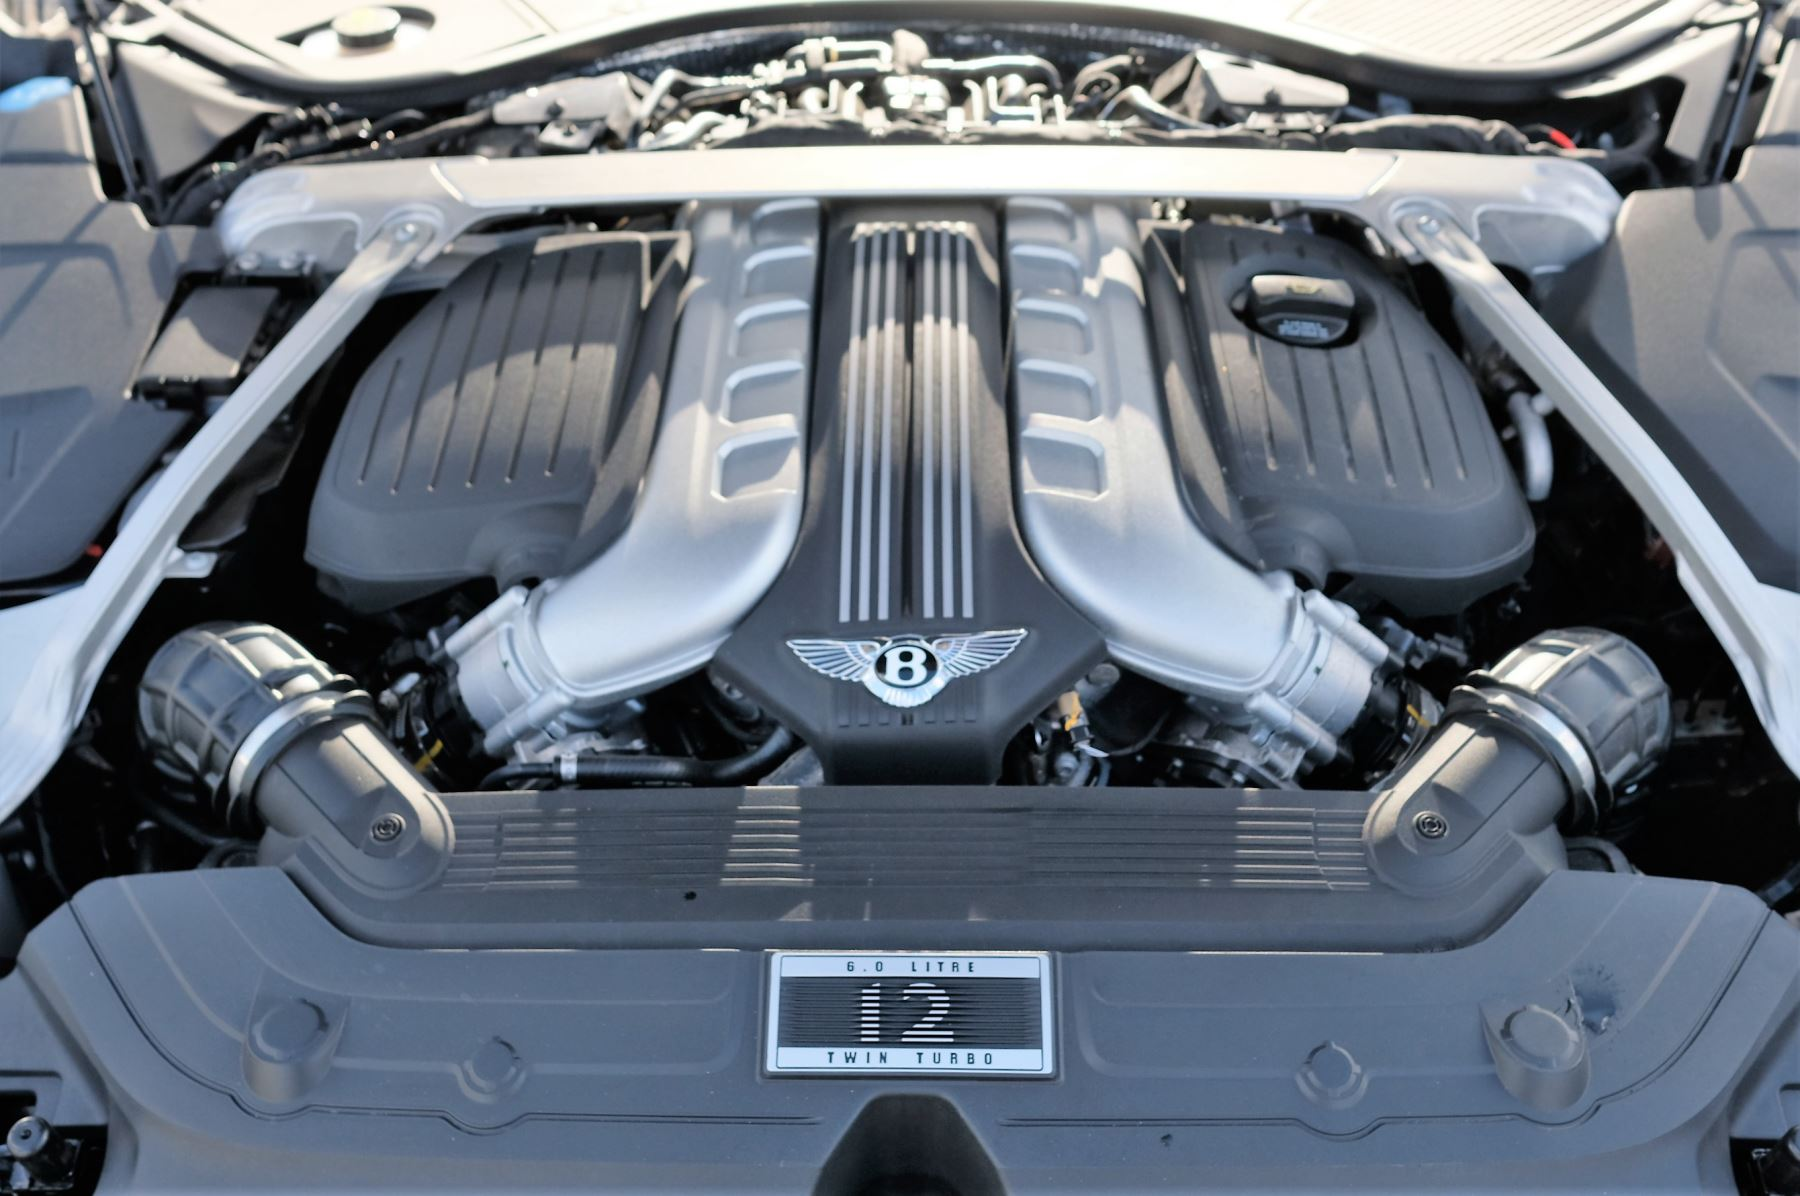 Bentley Continental GT 6.0 W12 Centenary, City and Touring Specification image 10